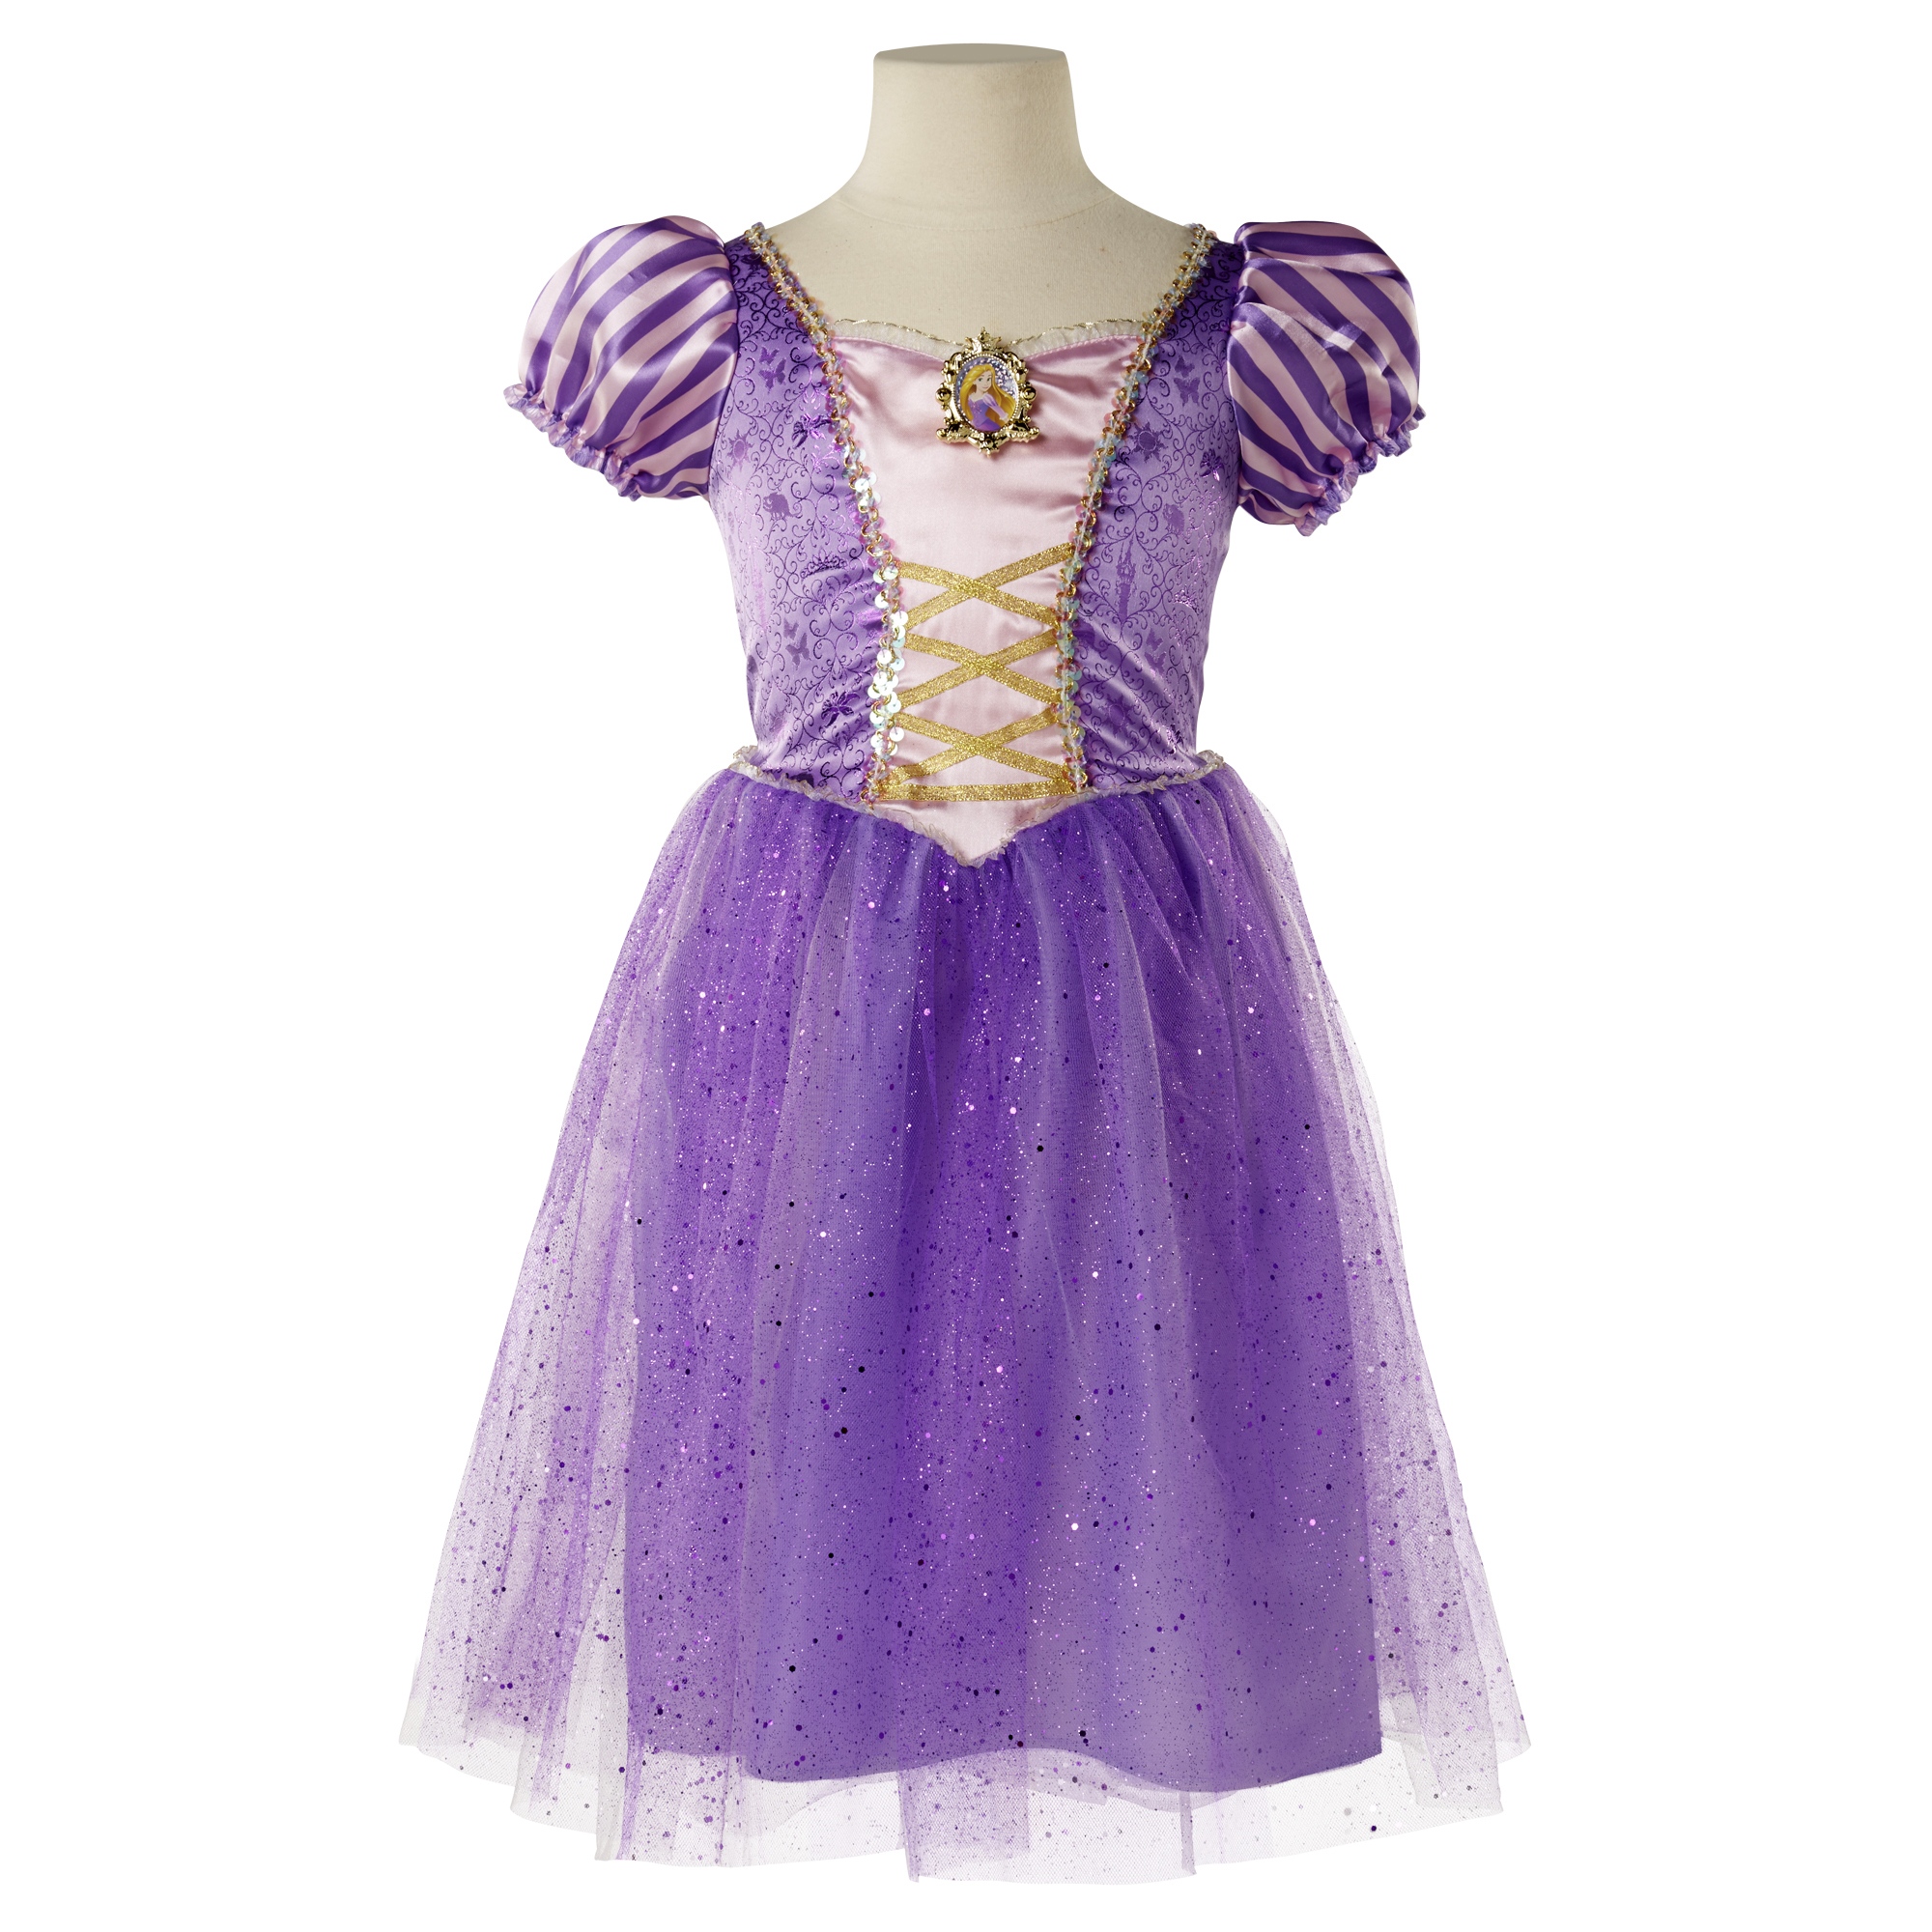 Girls Rapunzel Season 2 Outfit Disney Princess Costume